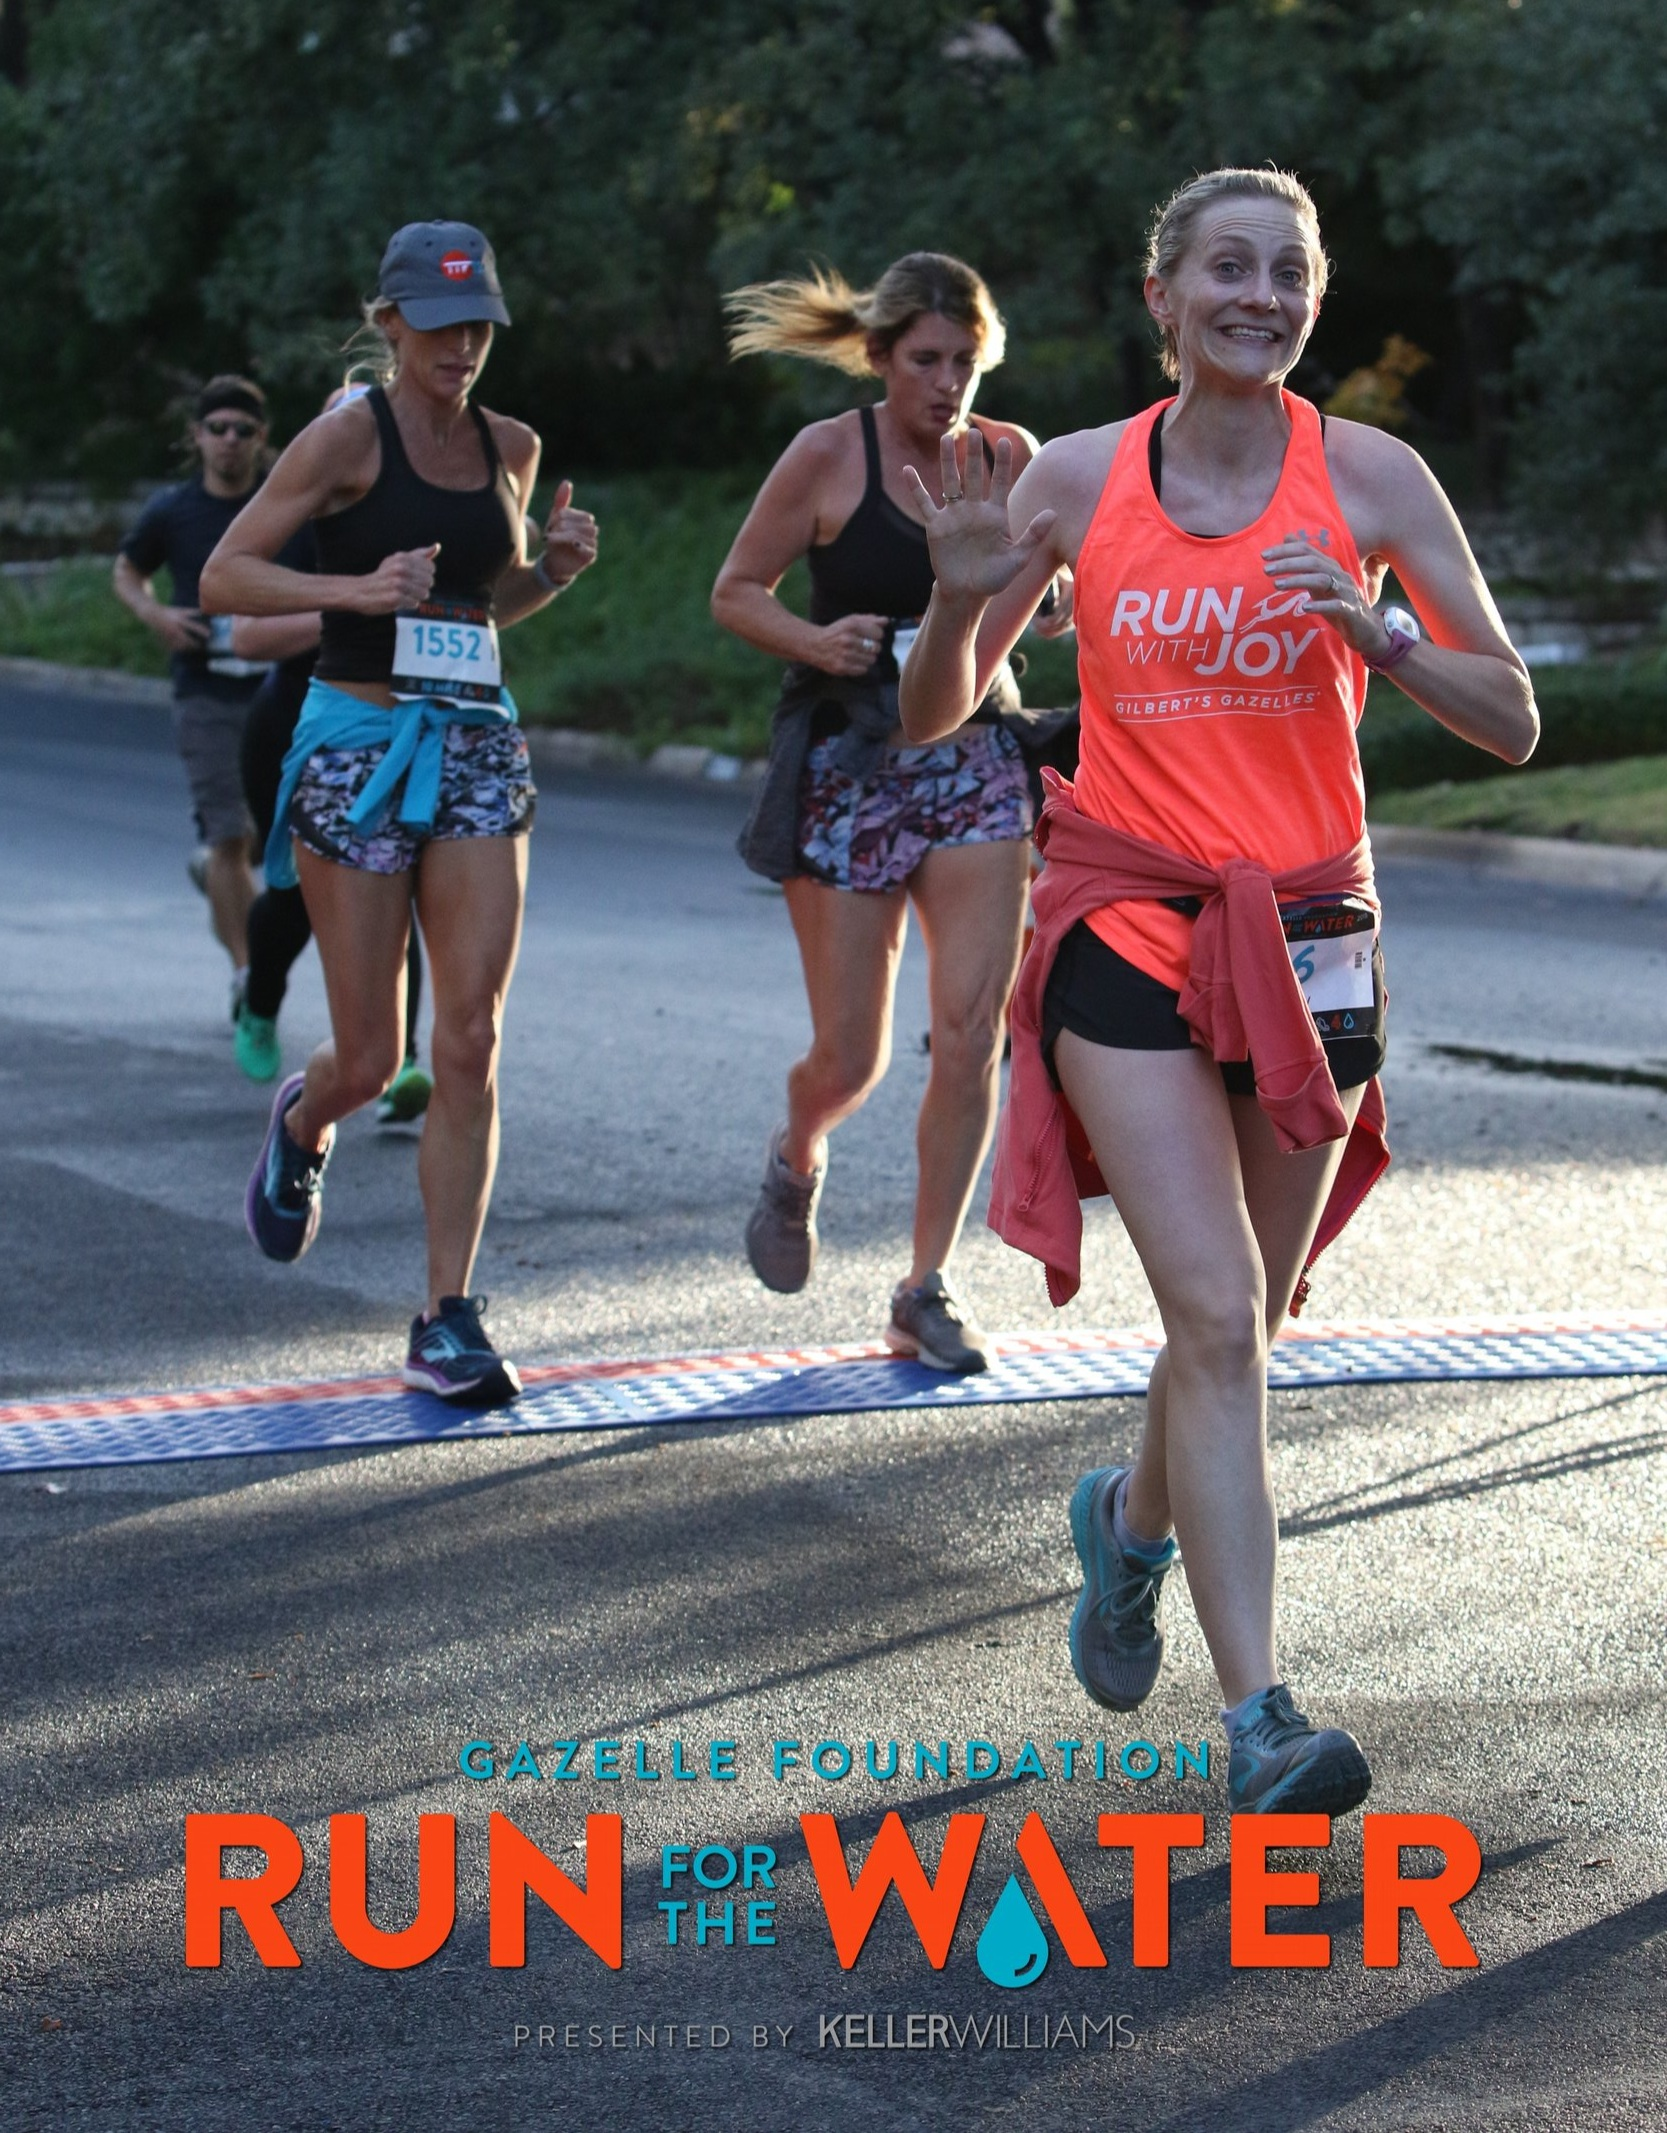 Run+for+the+Water+2018.jpg